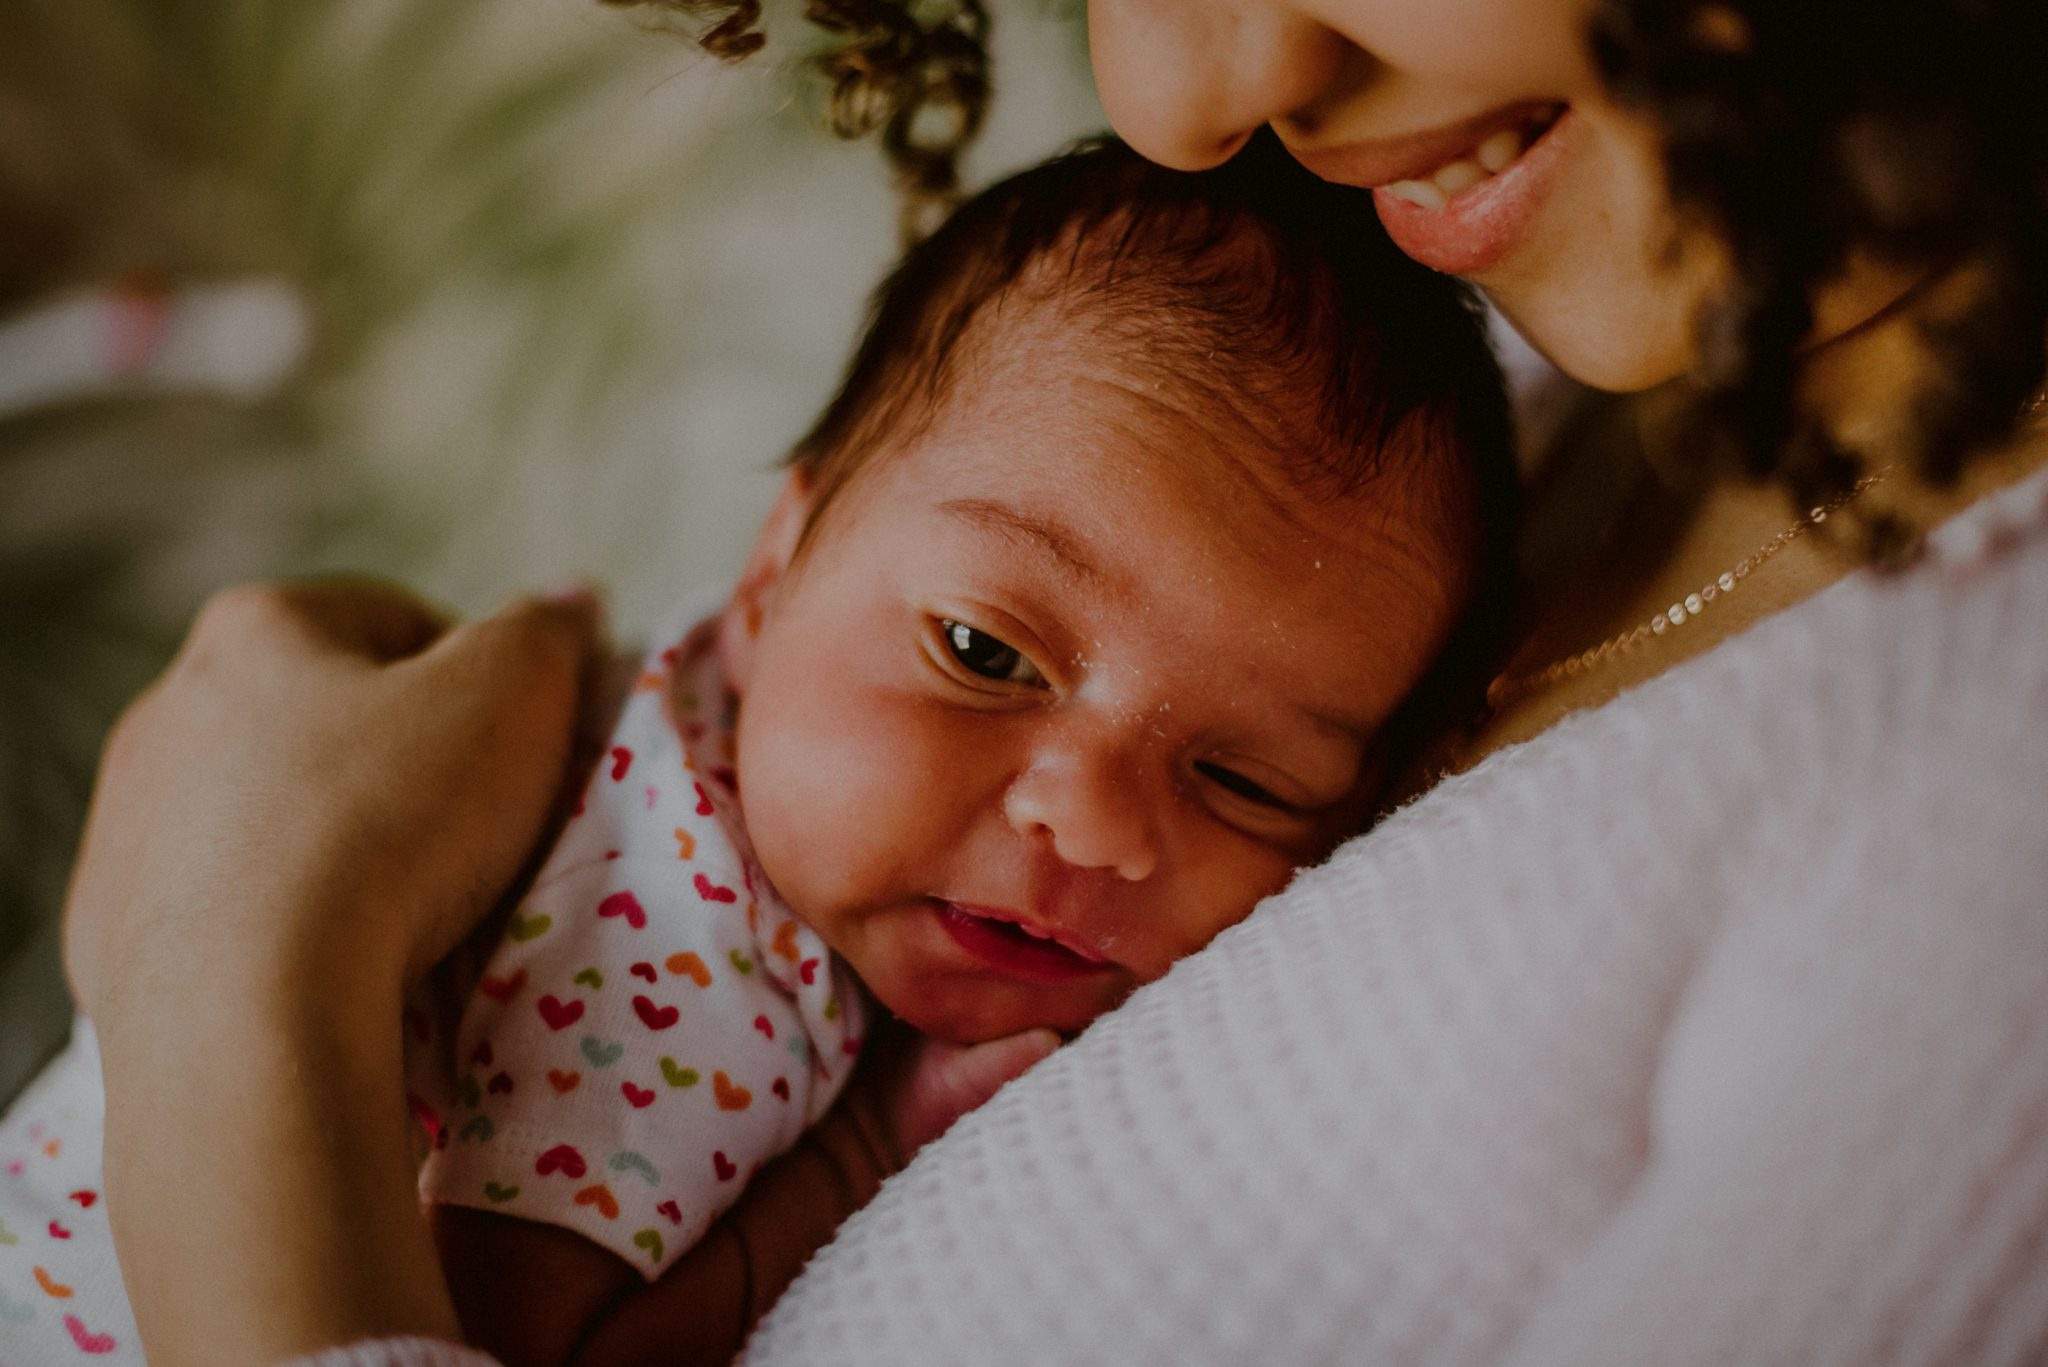 baby with eyes open on mother's chest while mom smiles